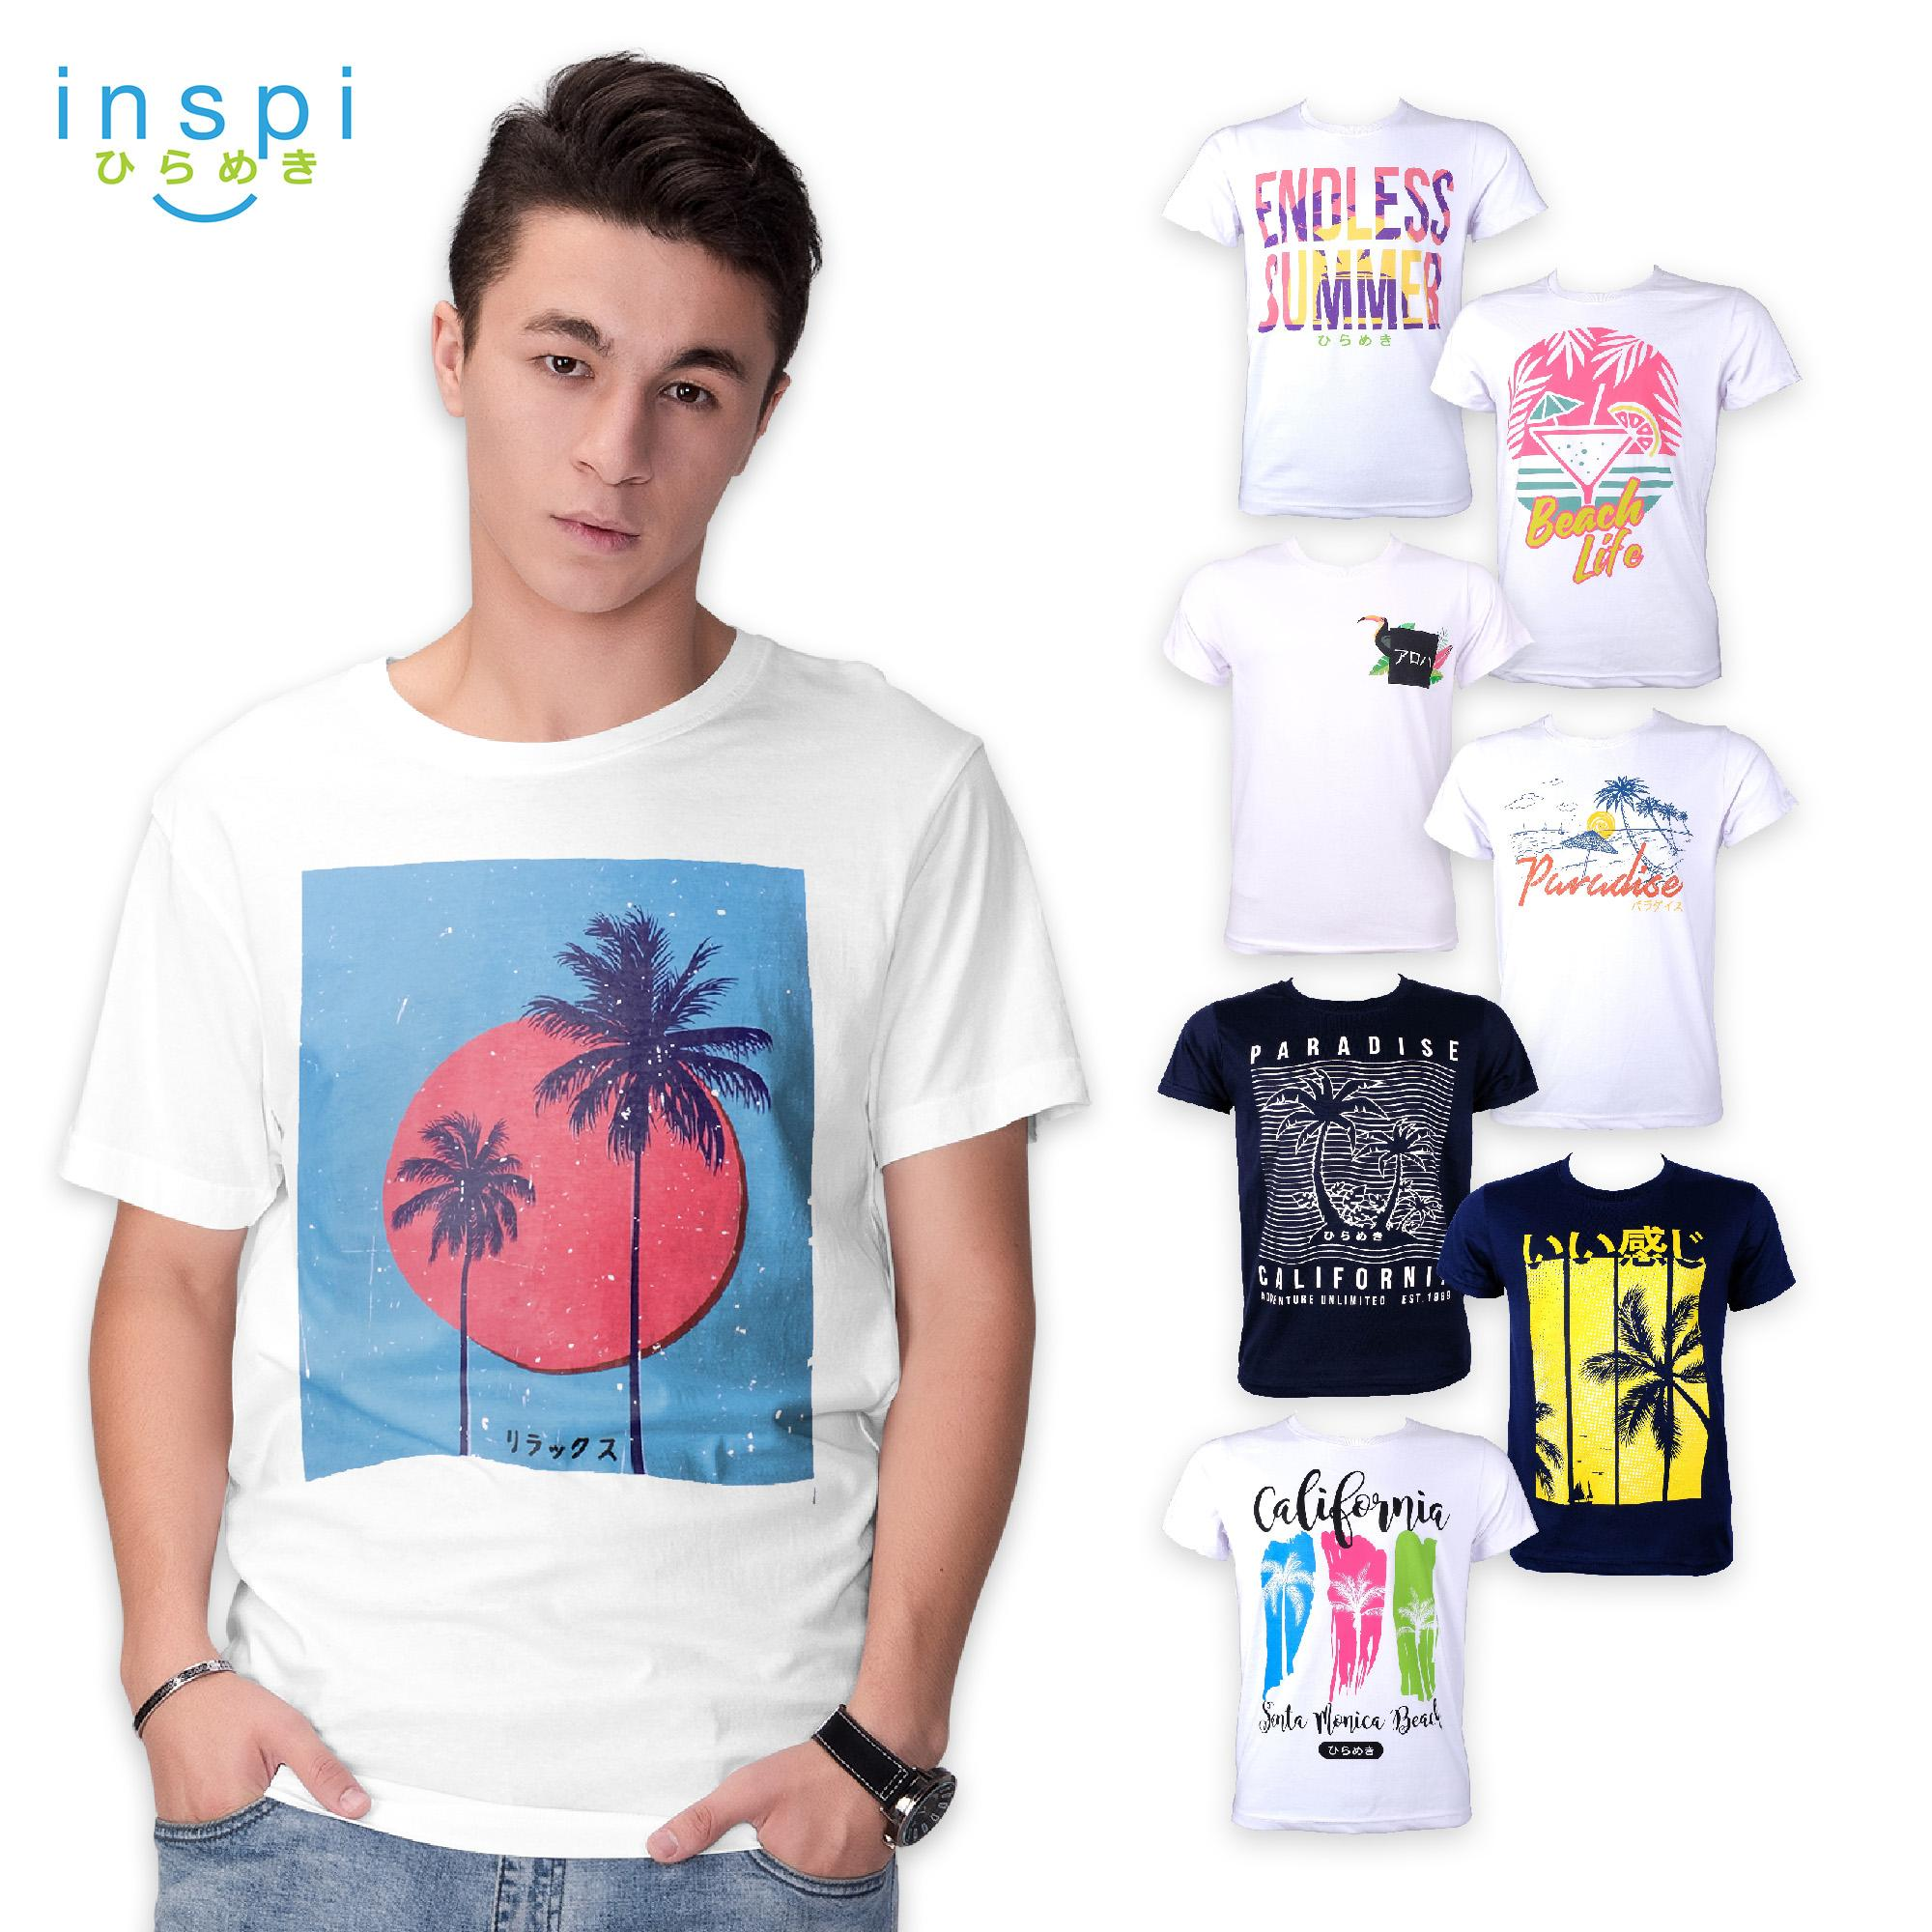 158e6ad7751 INSPI Tees Summer Collection tshirt printed graphic tee Mens t shirt shirts  for men tshirts sale